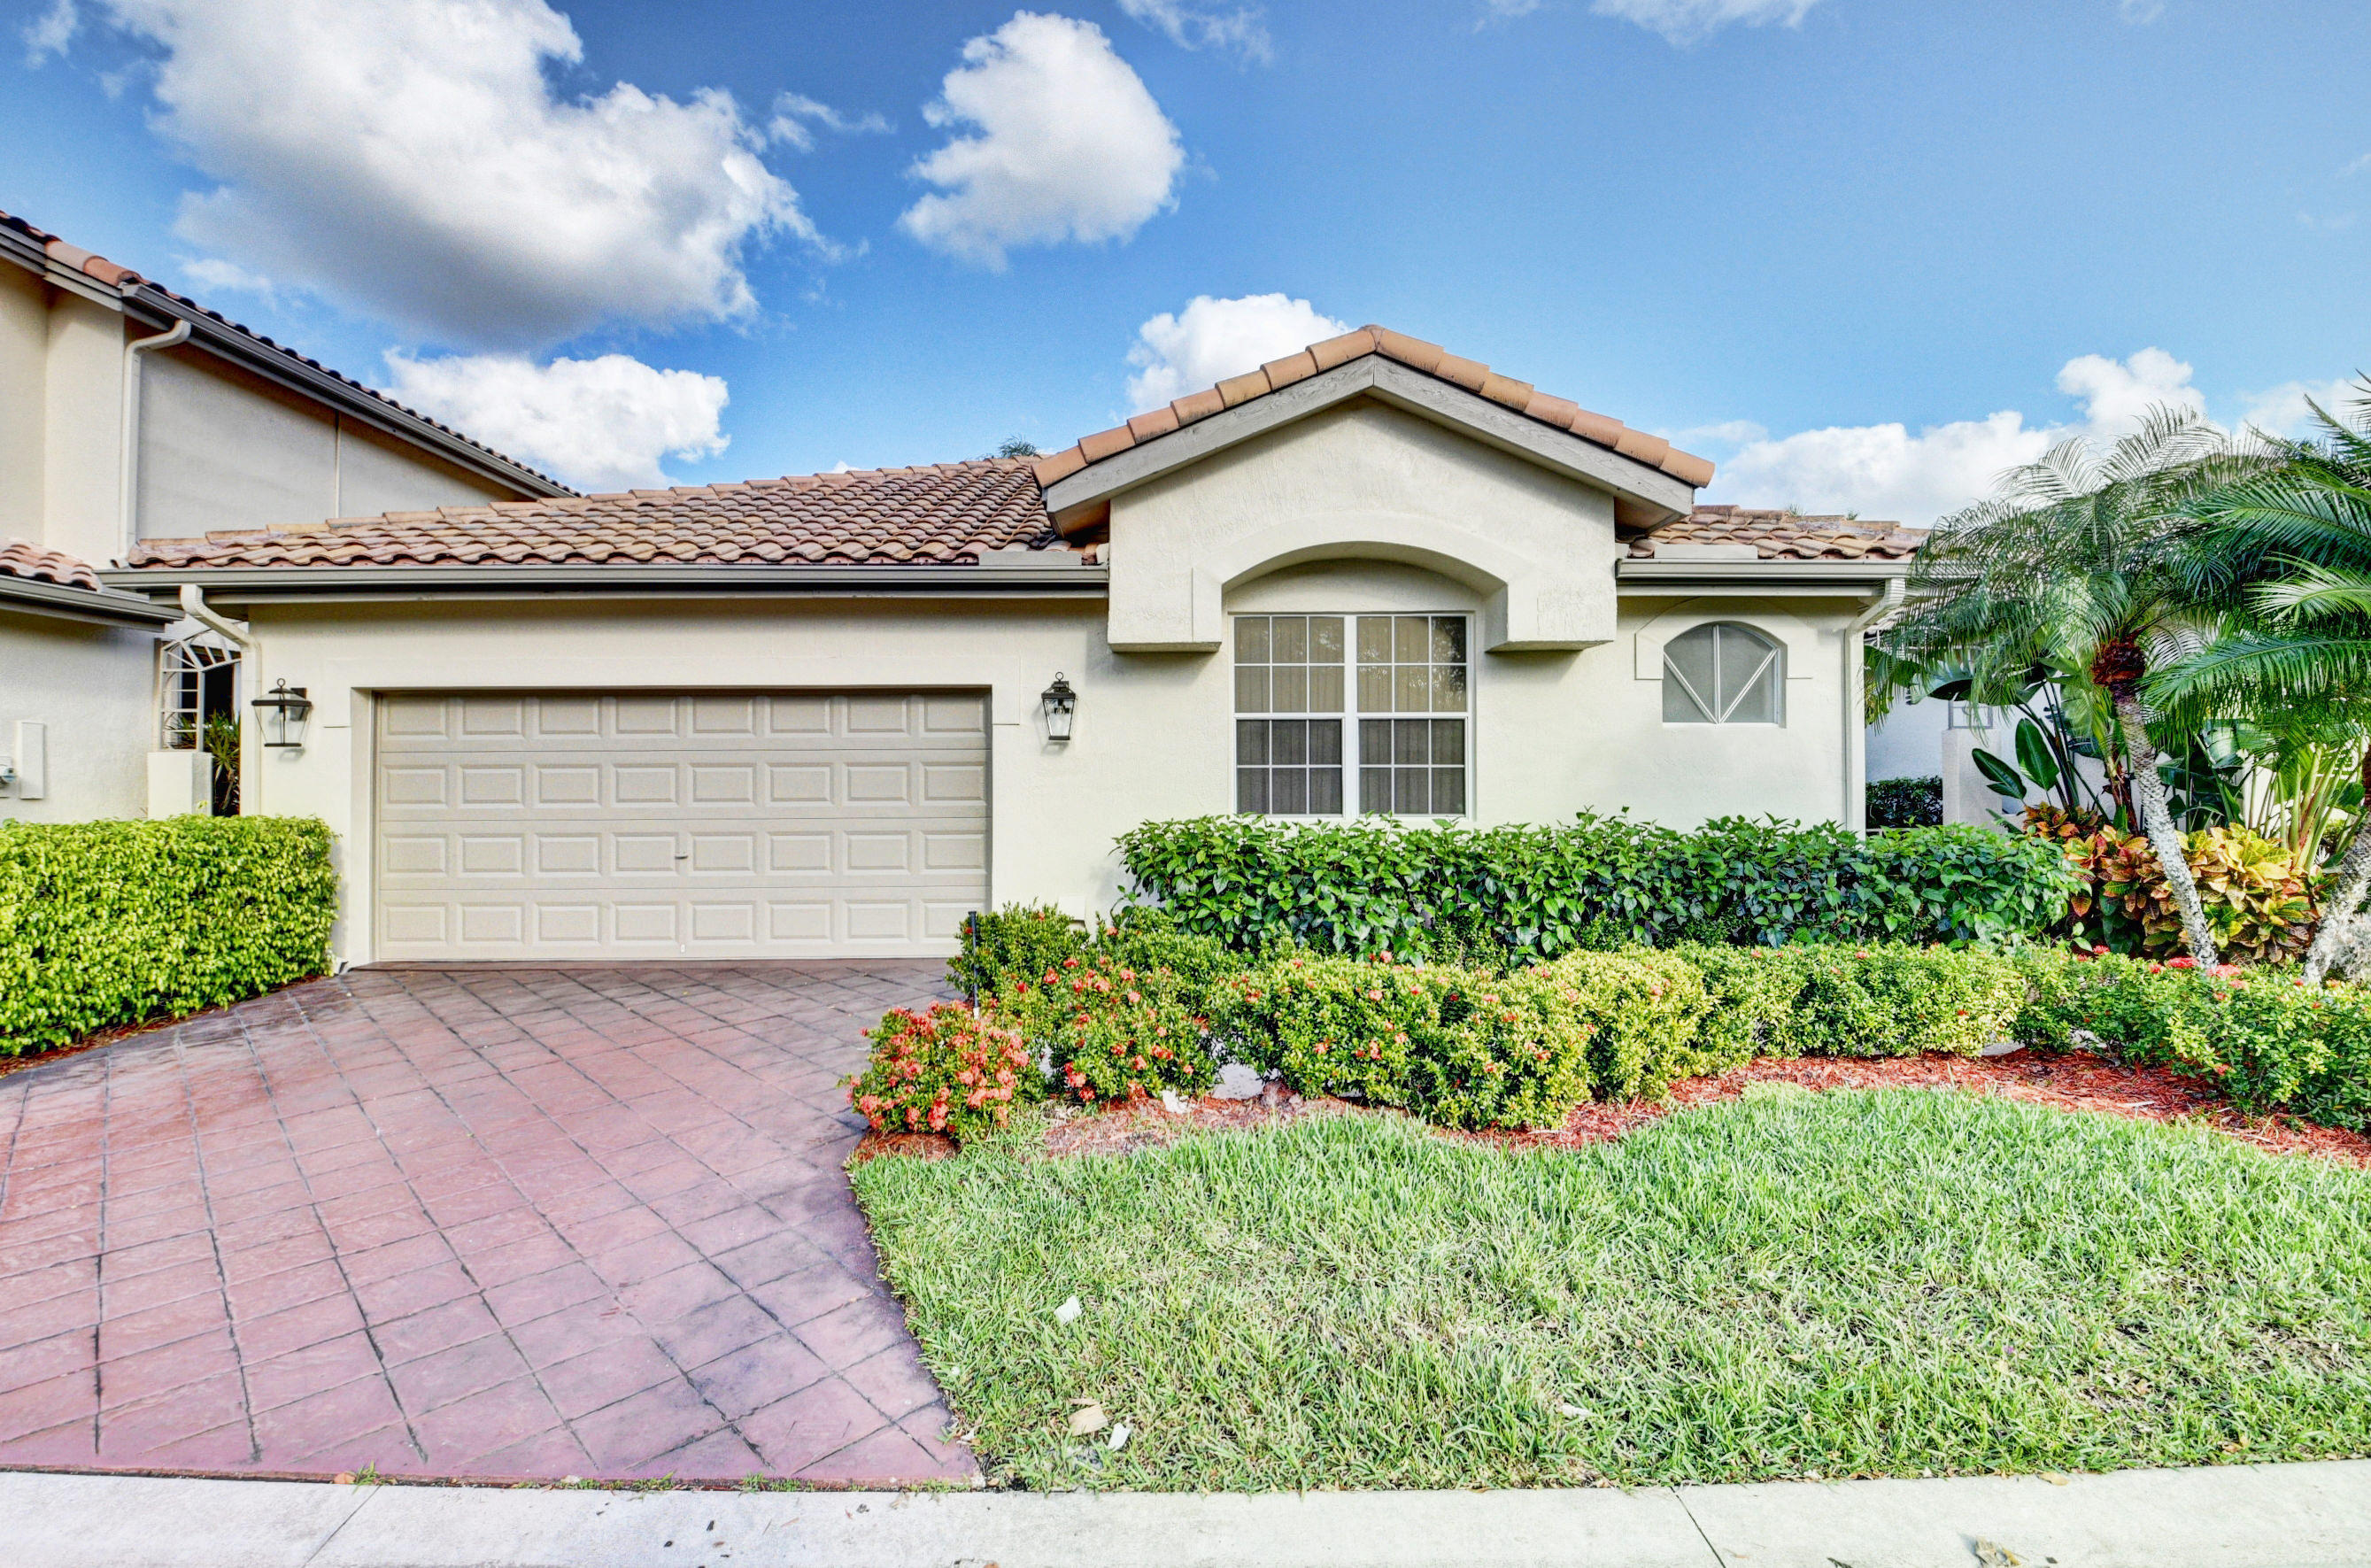 Details for 5290 26th Circle Nw, Boca Raton, FL 33496